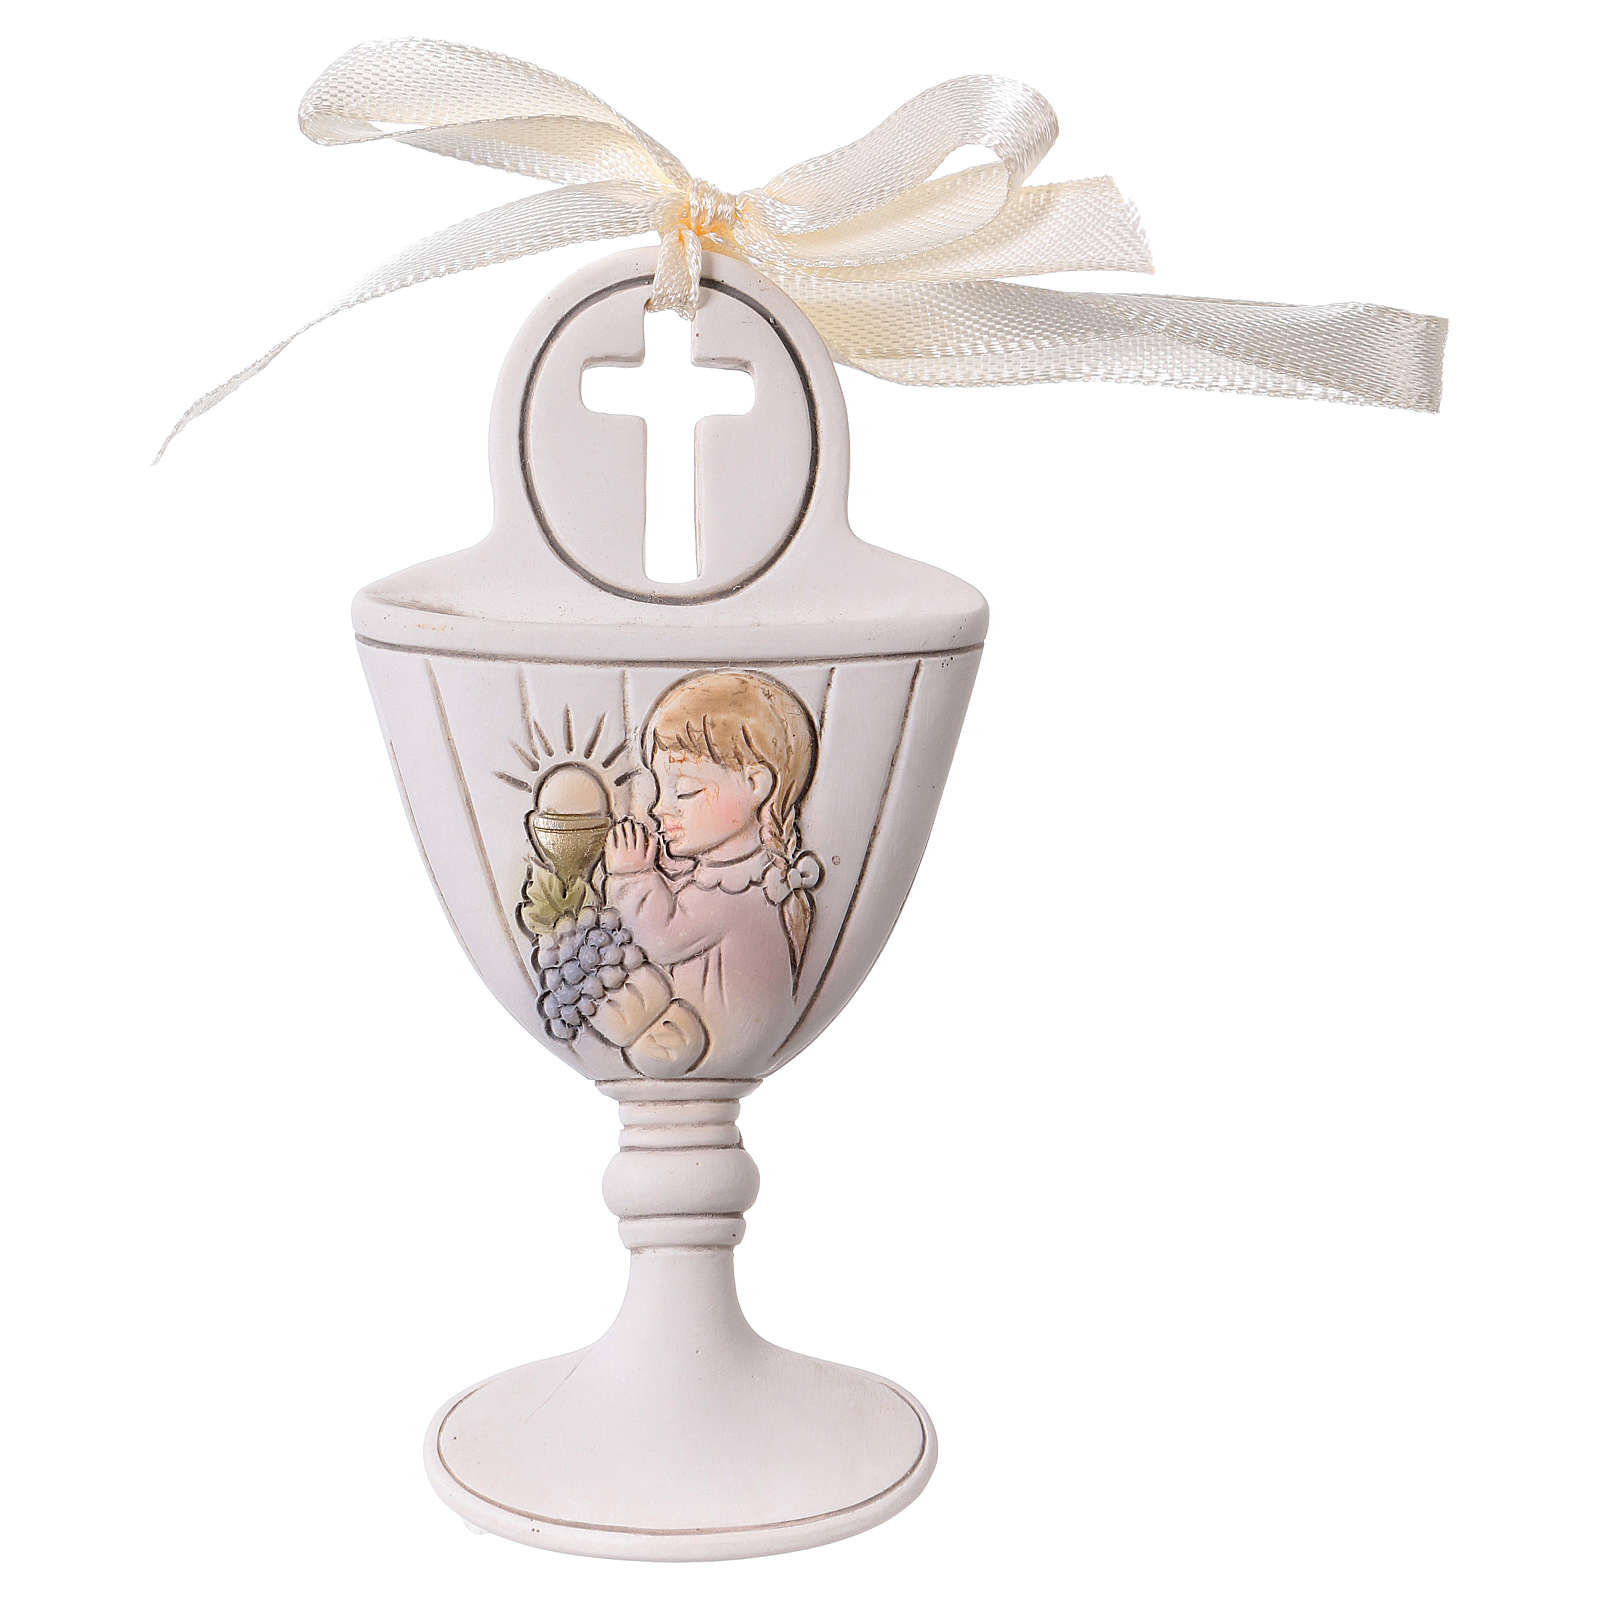 Goblet-shaped party favour with praying girl in resin 9 cm 3